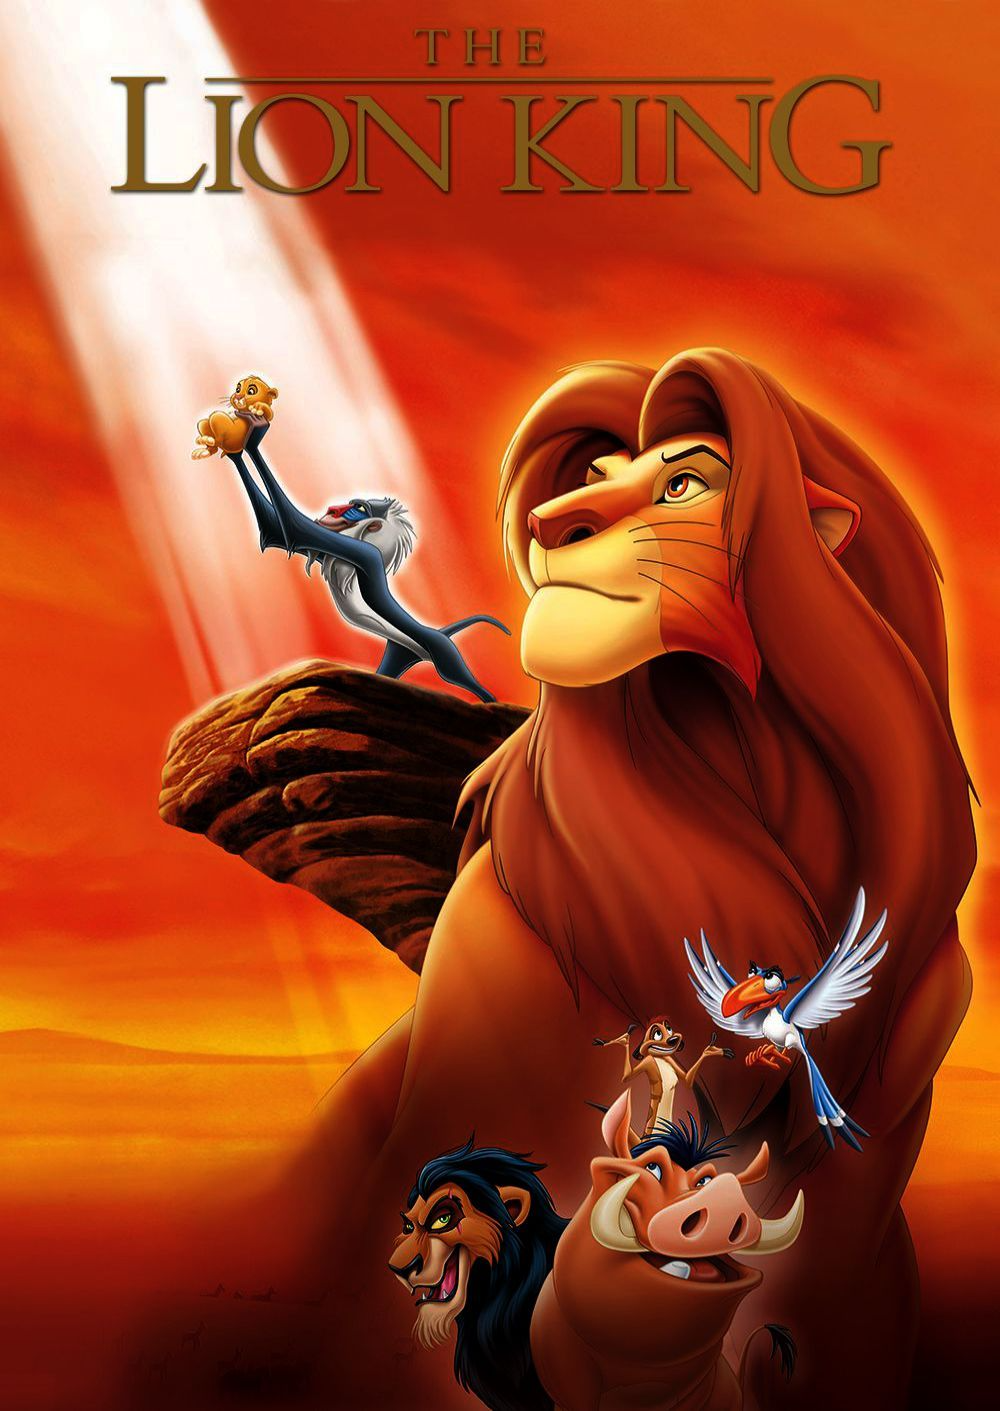 The Lion King Movie Poster - POP CULTURE POSTERS